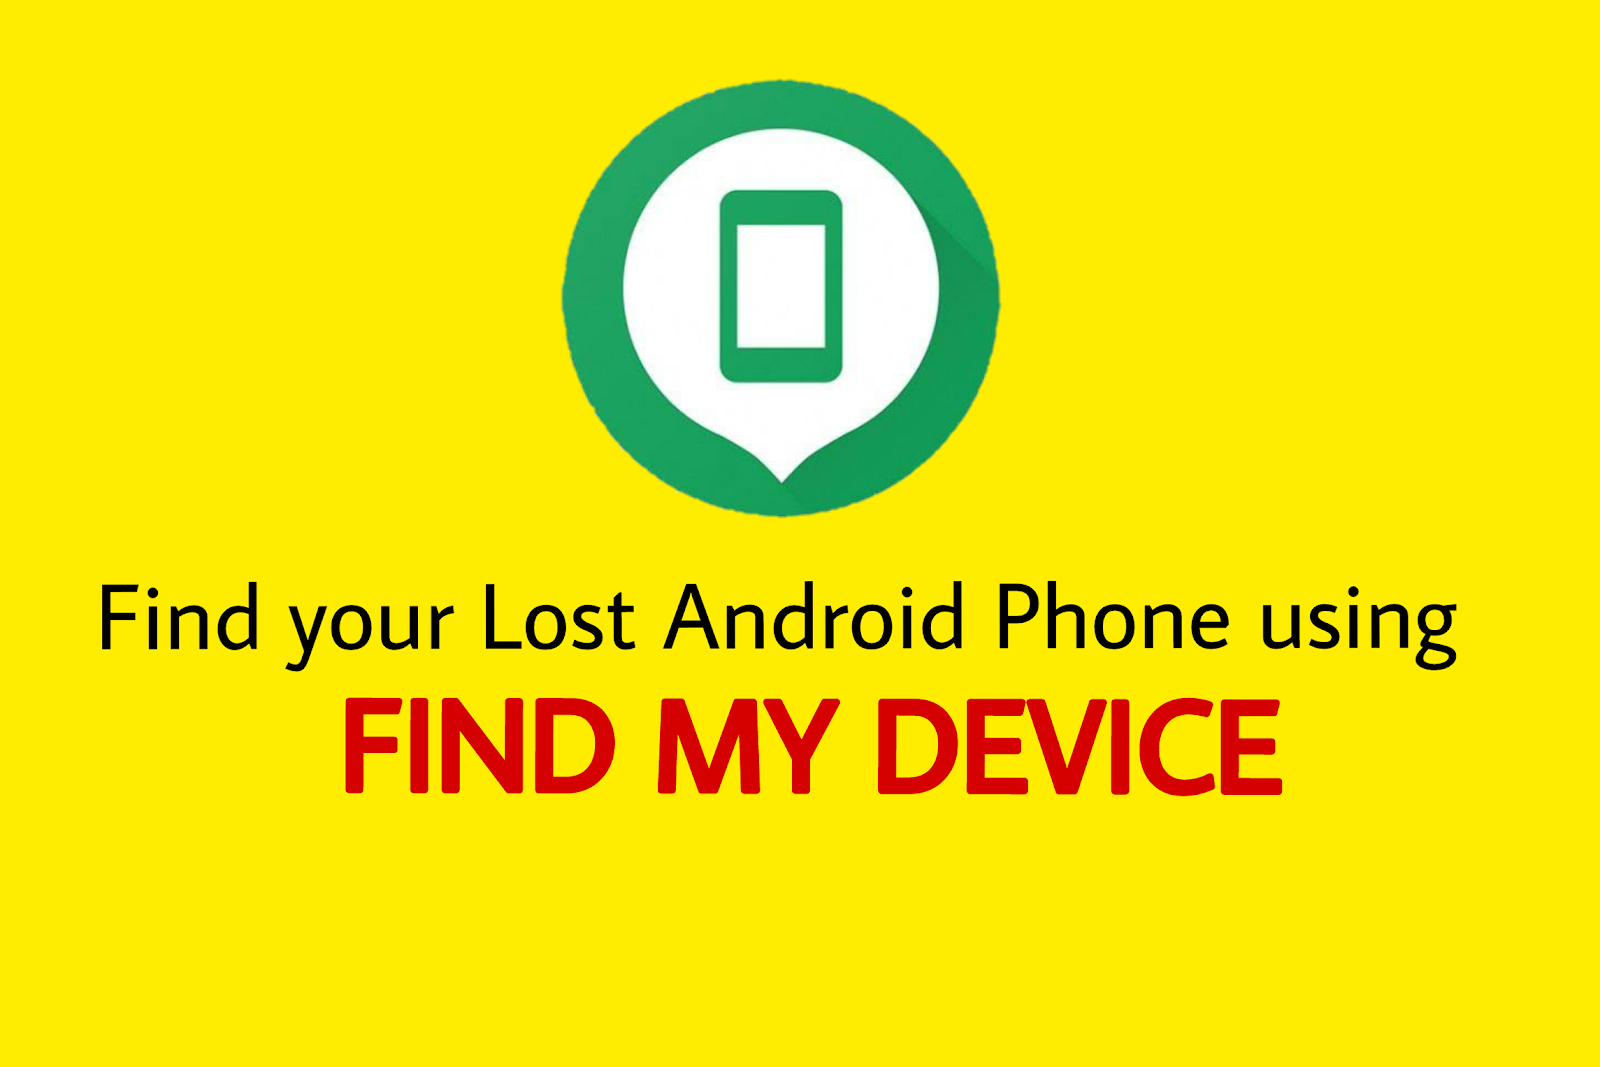 find your lost asndroid phone using find my device